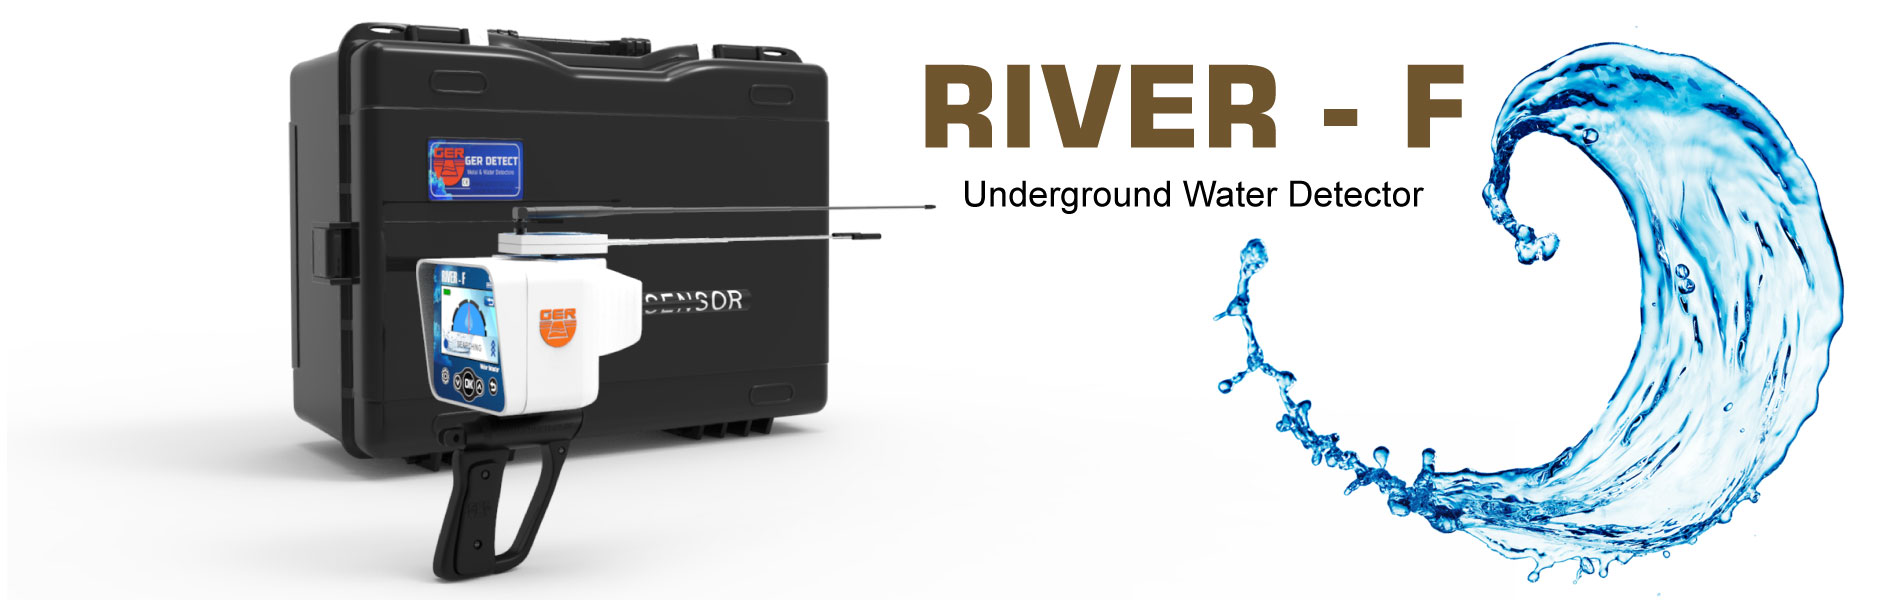 river-f best device detect groundwater